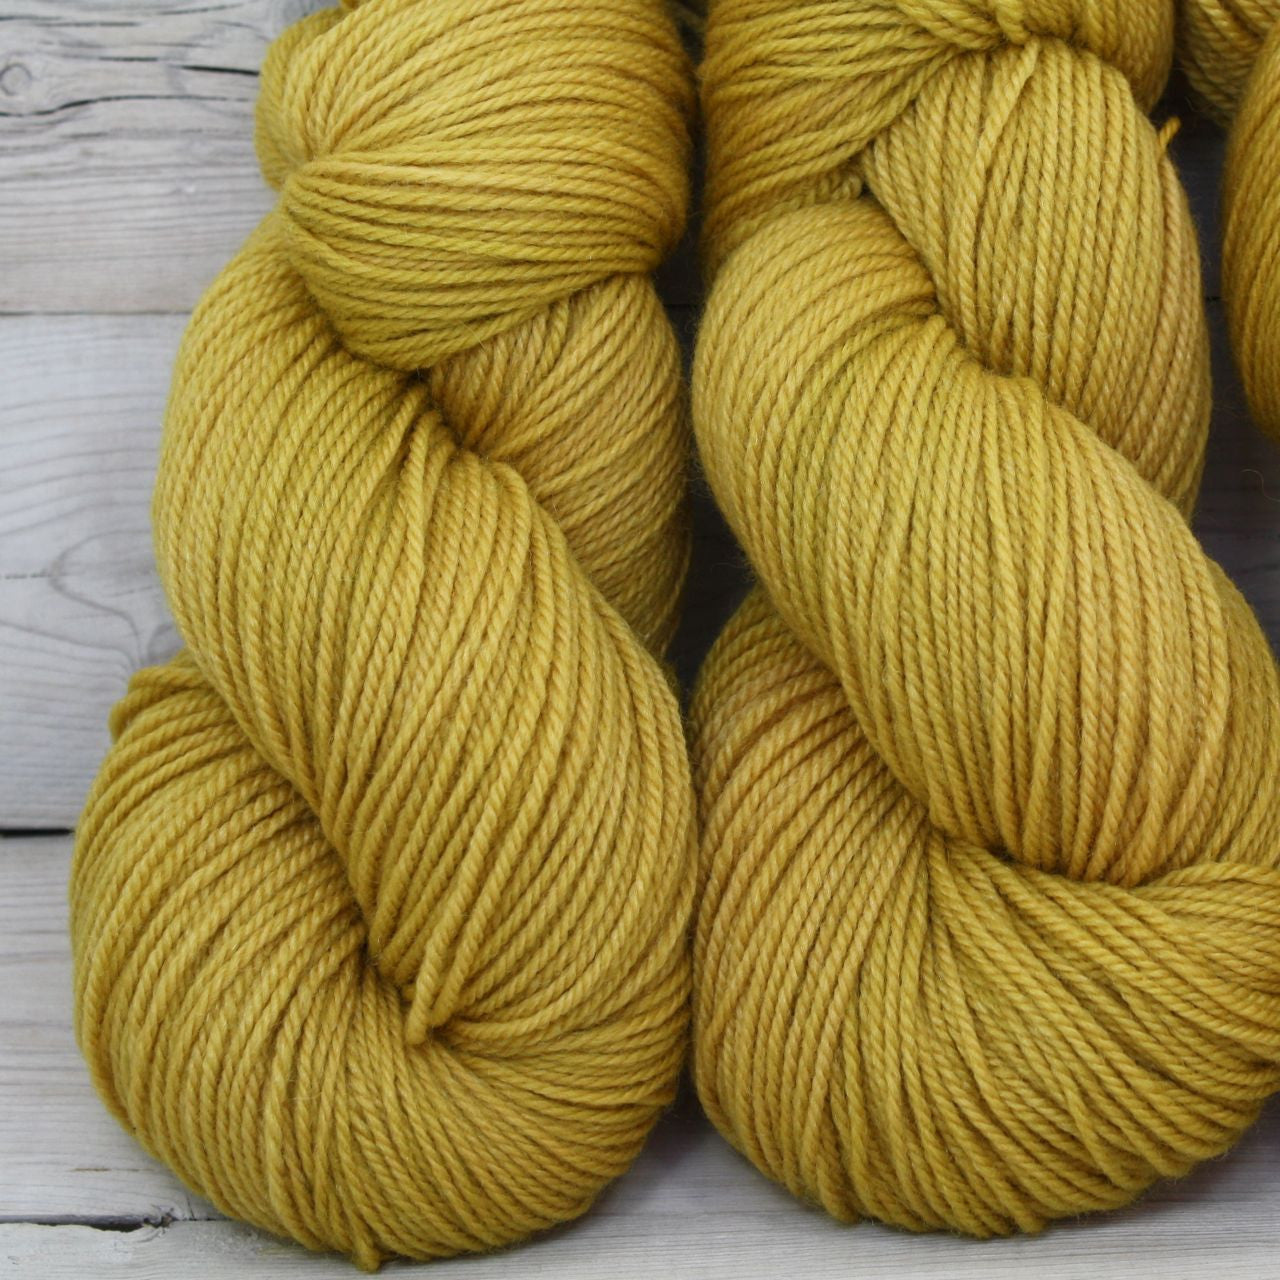 Zeta Yarn | Colorway: Honeycomb